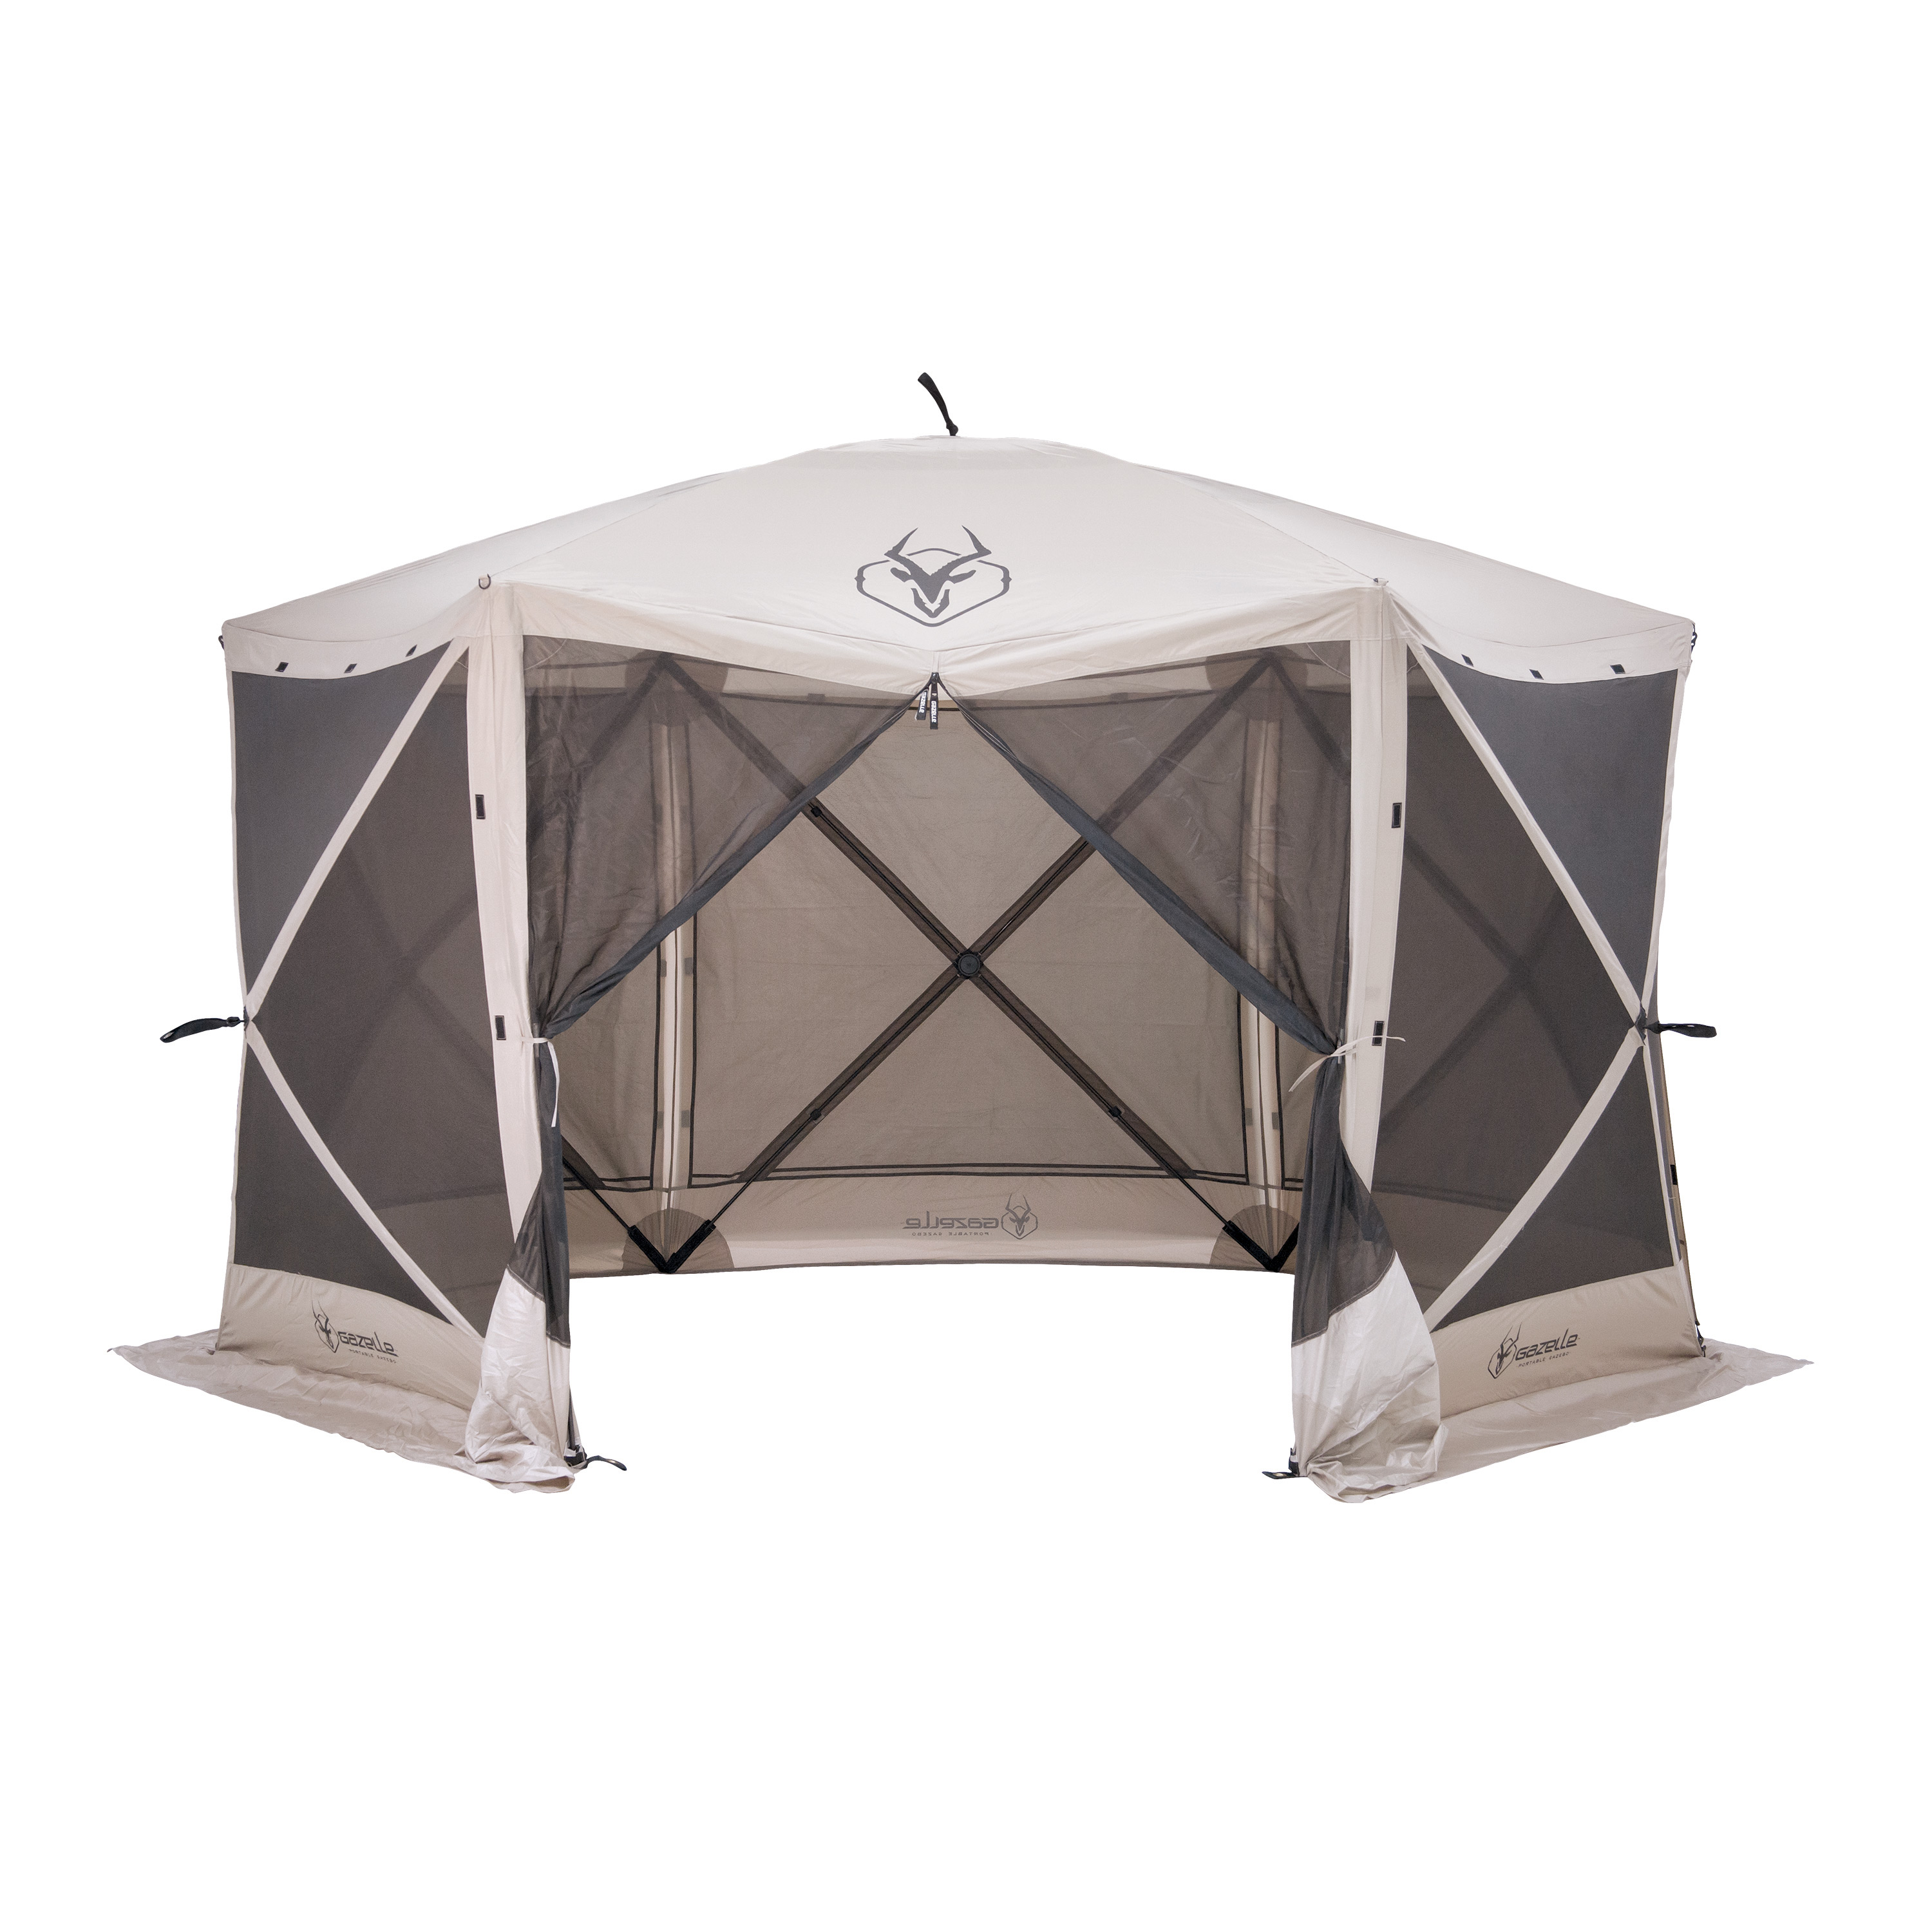 Portable Outdoor Screen Gazebo : Gazelle sided portable gazebo shop your way online